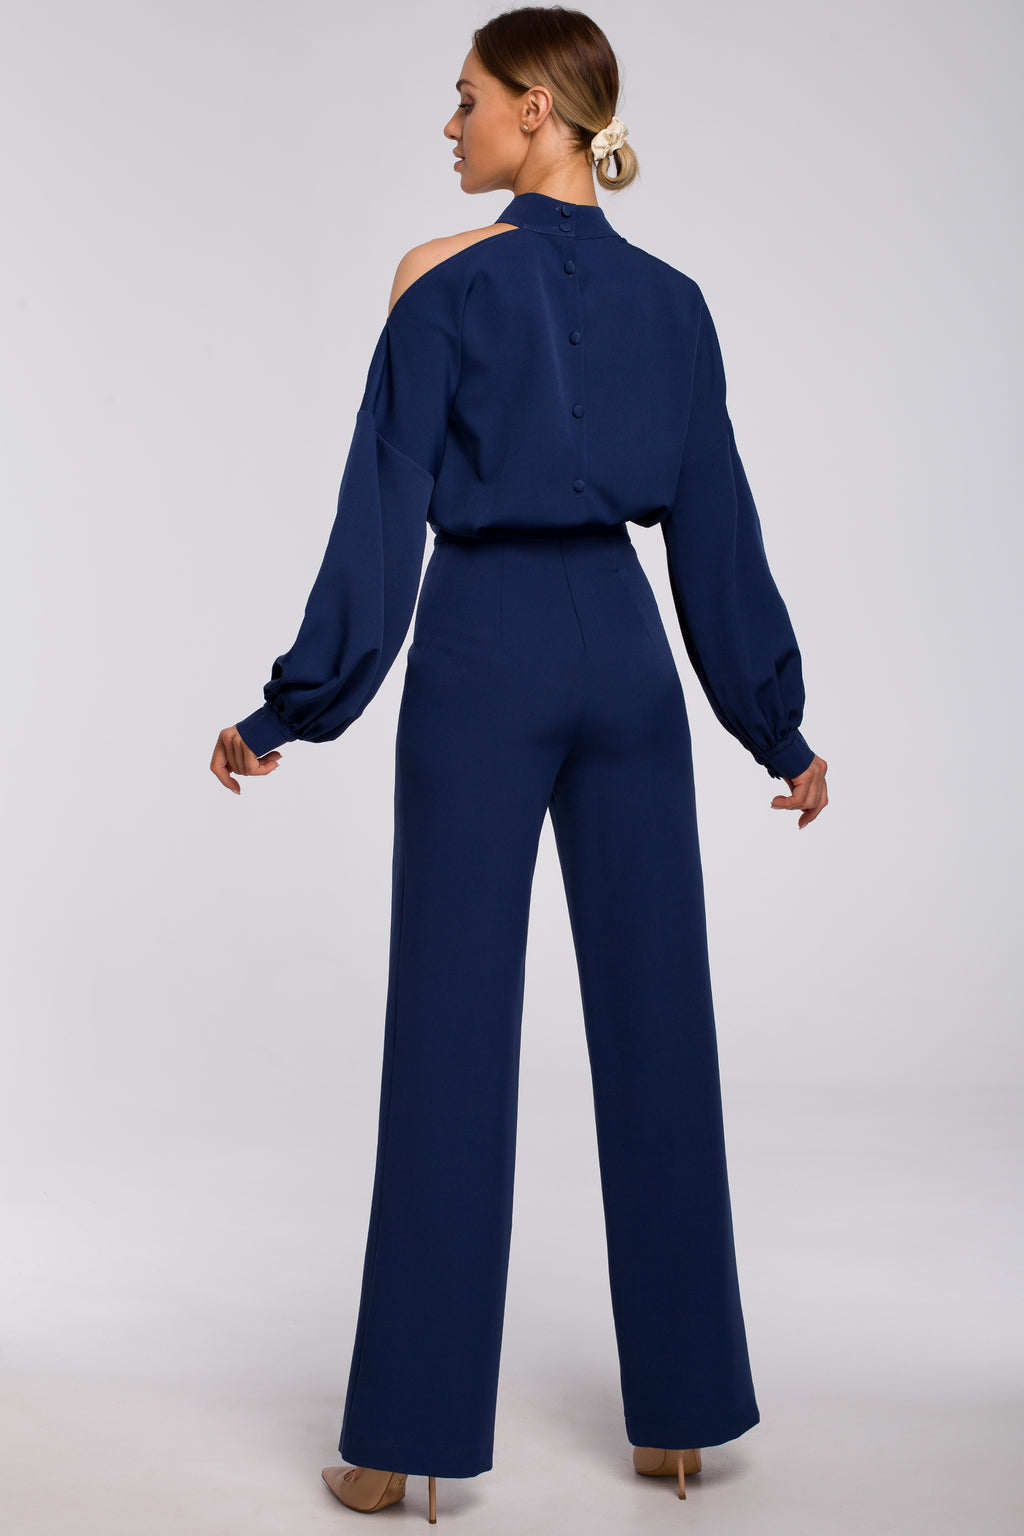 Navy Blue Bishop Sleeve Jumpsuit - So Chic Boutique